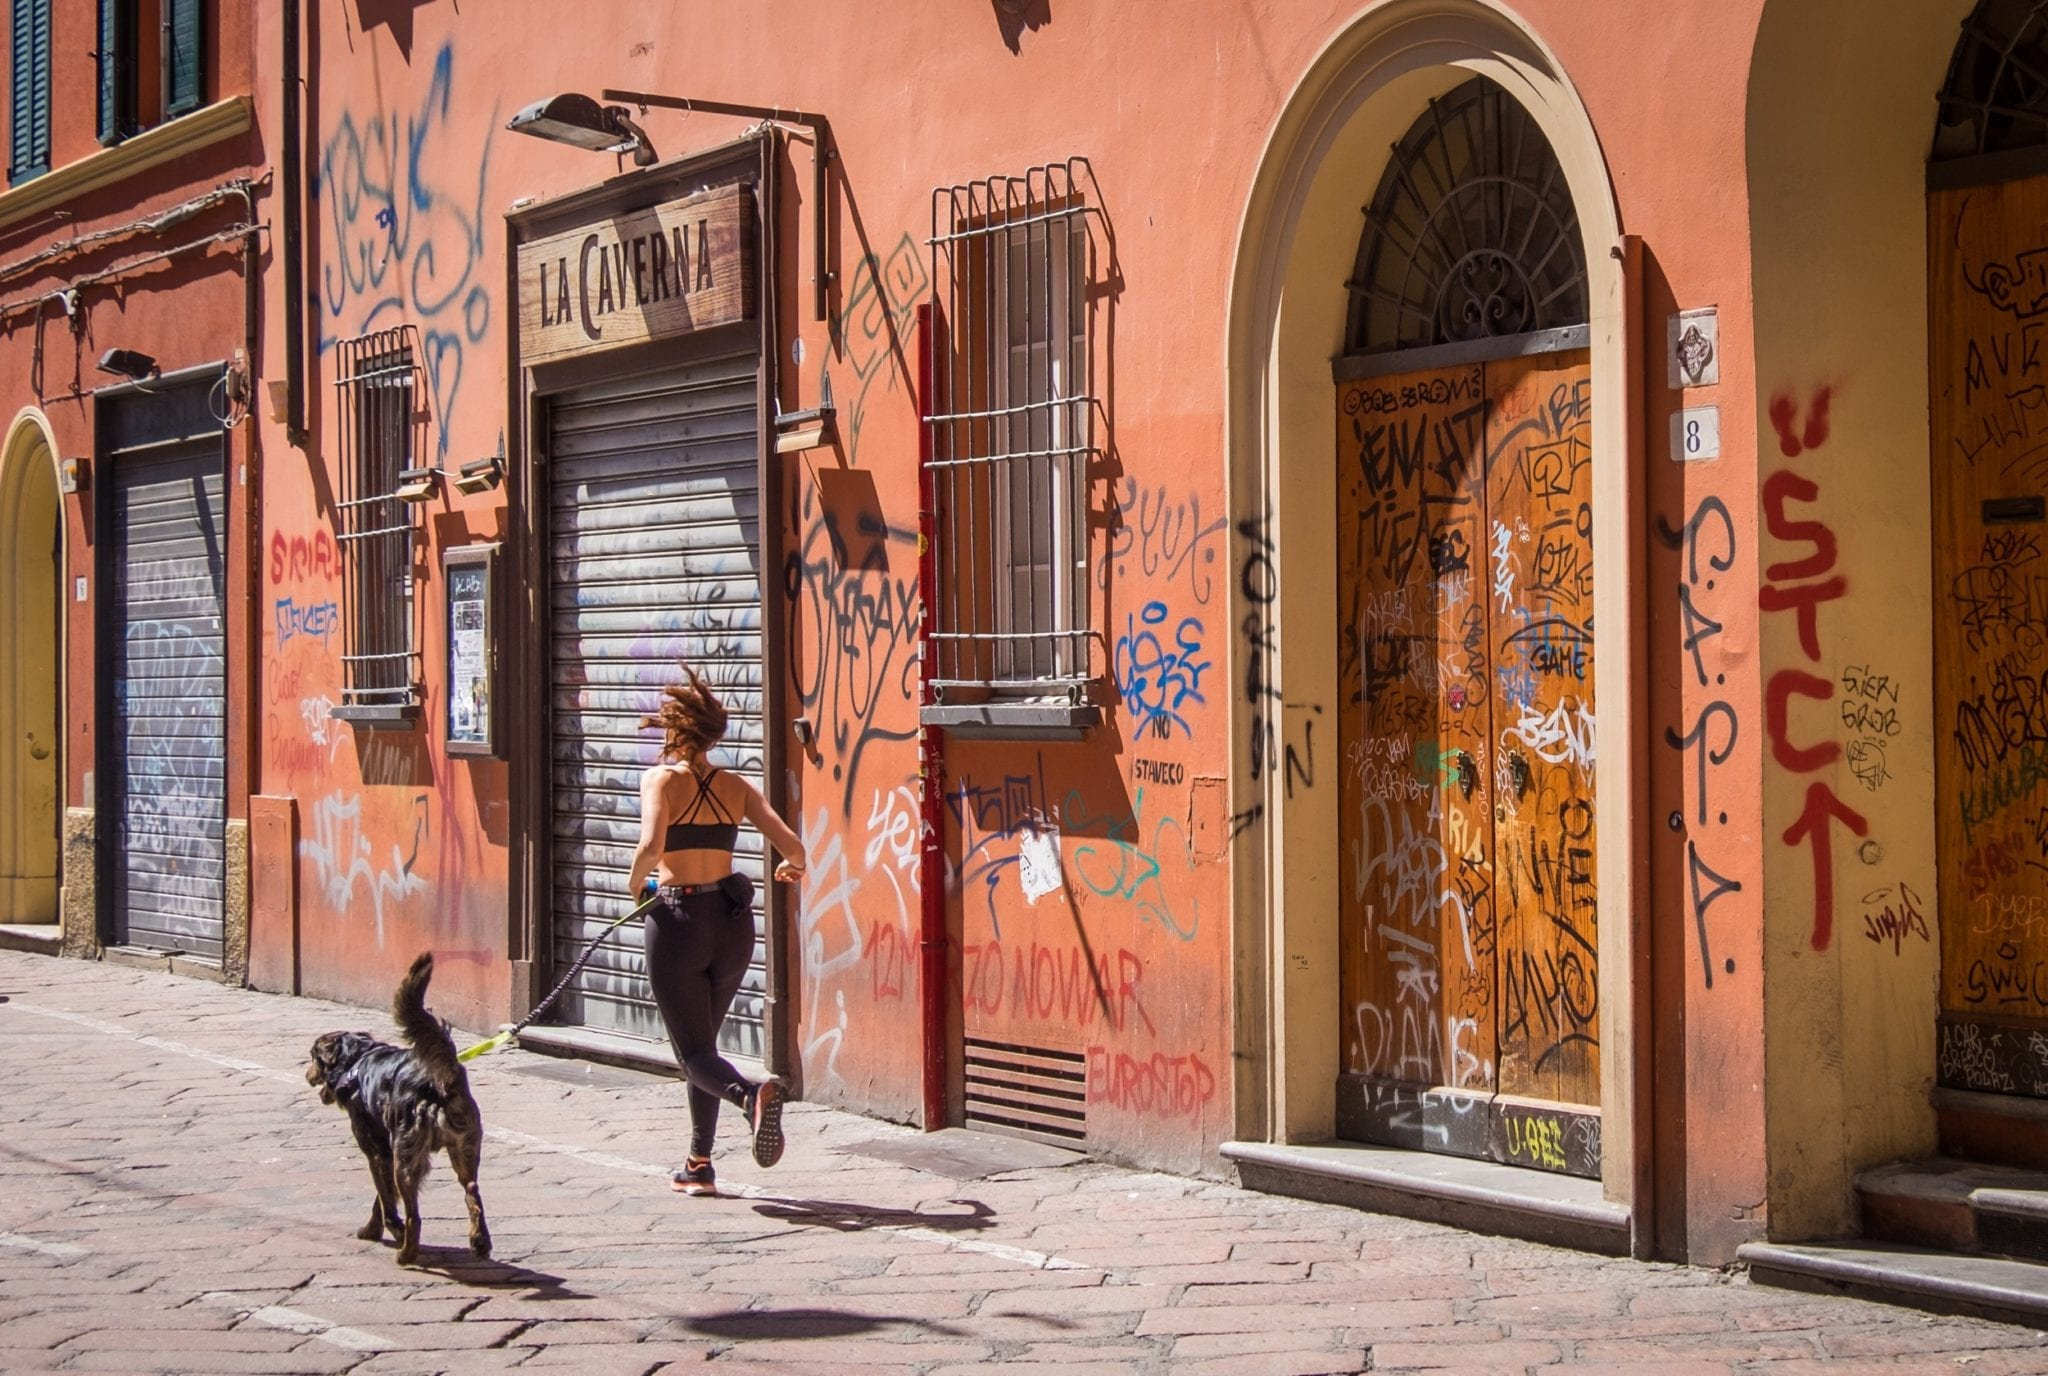 A woman in workout gear runs with her black medium-sized dog on a leash. They run past a pinkish-red wall covered with graffiti in Bologna, Italy.